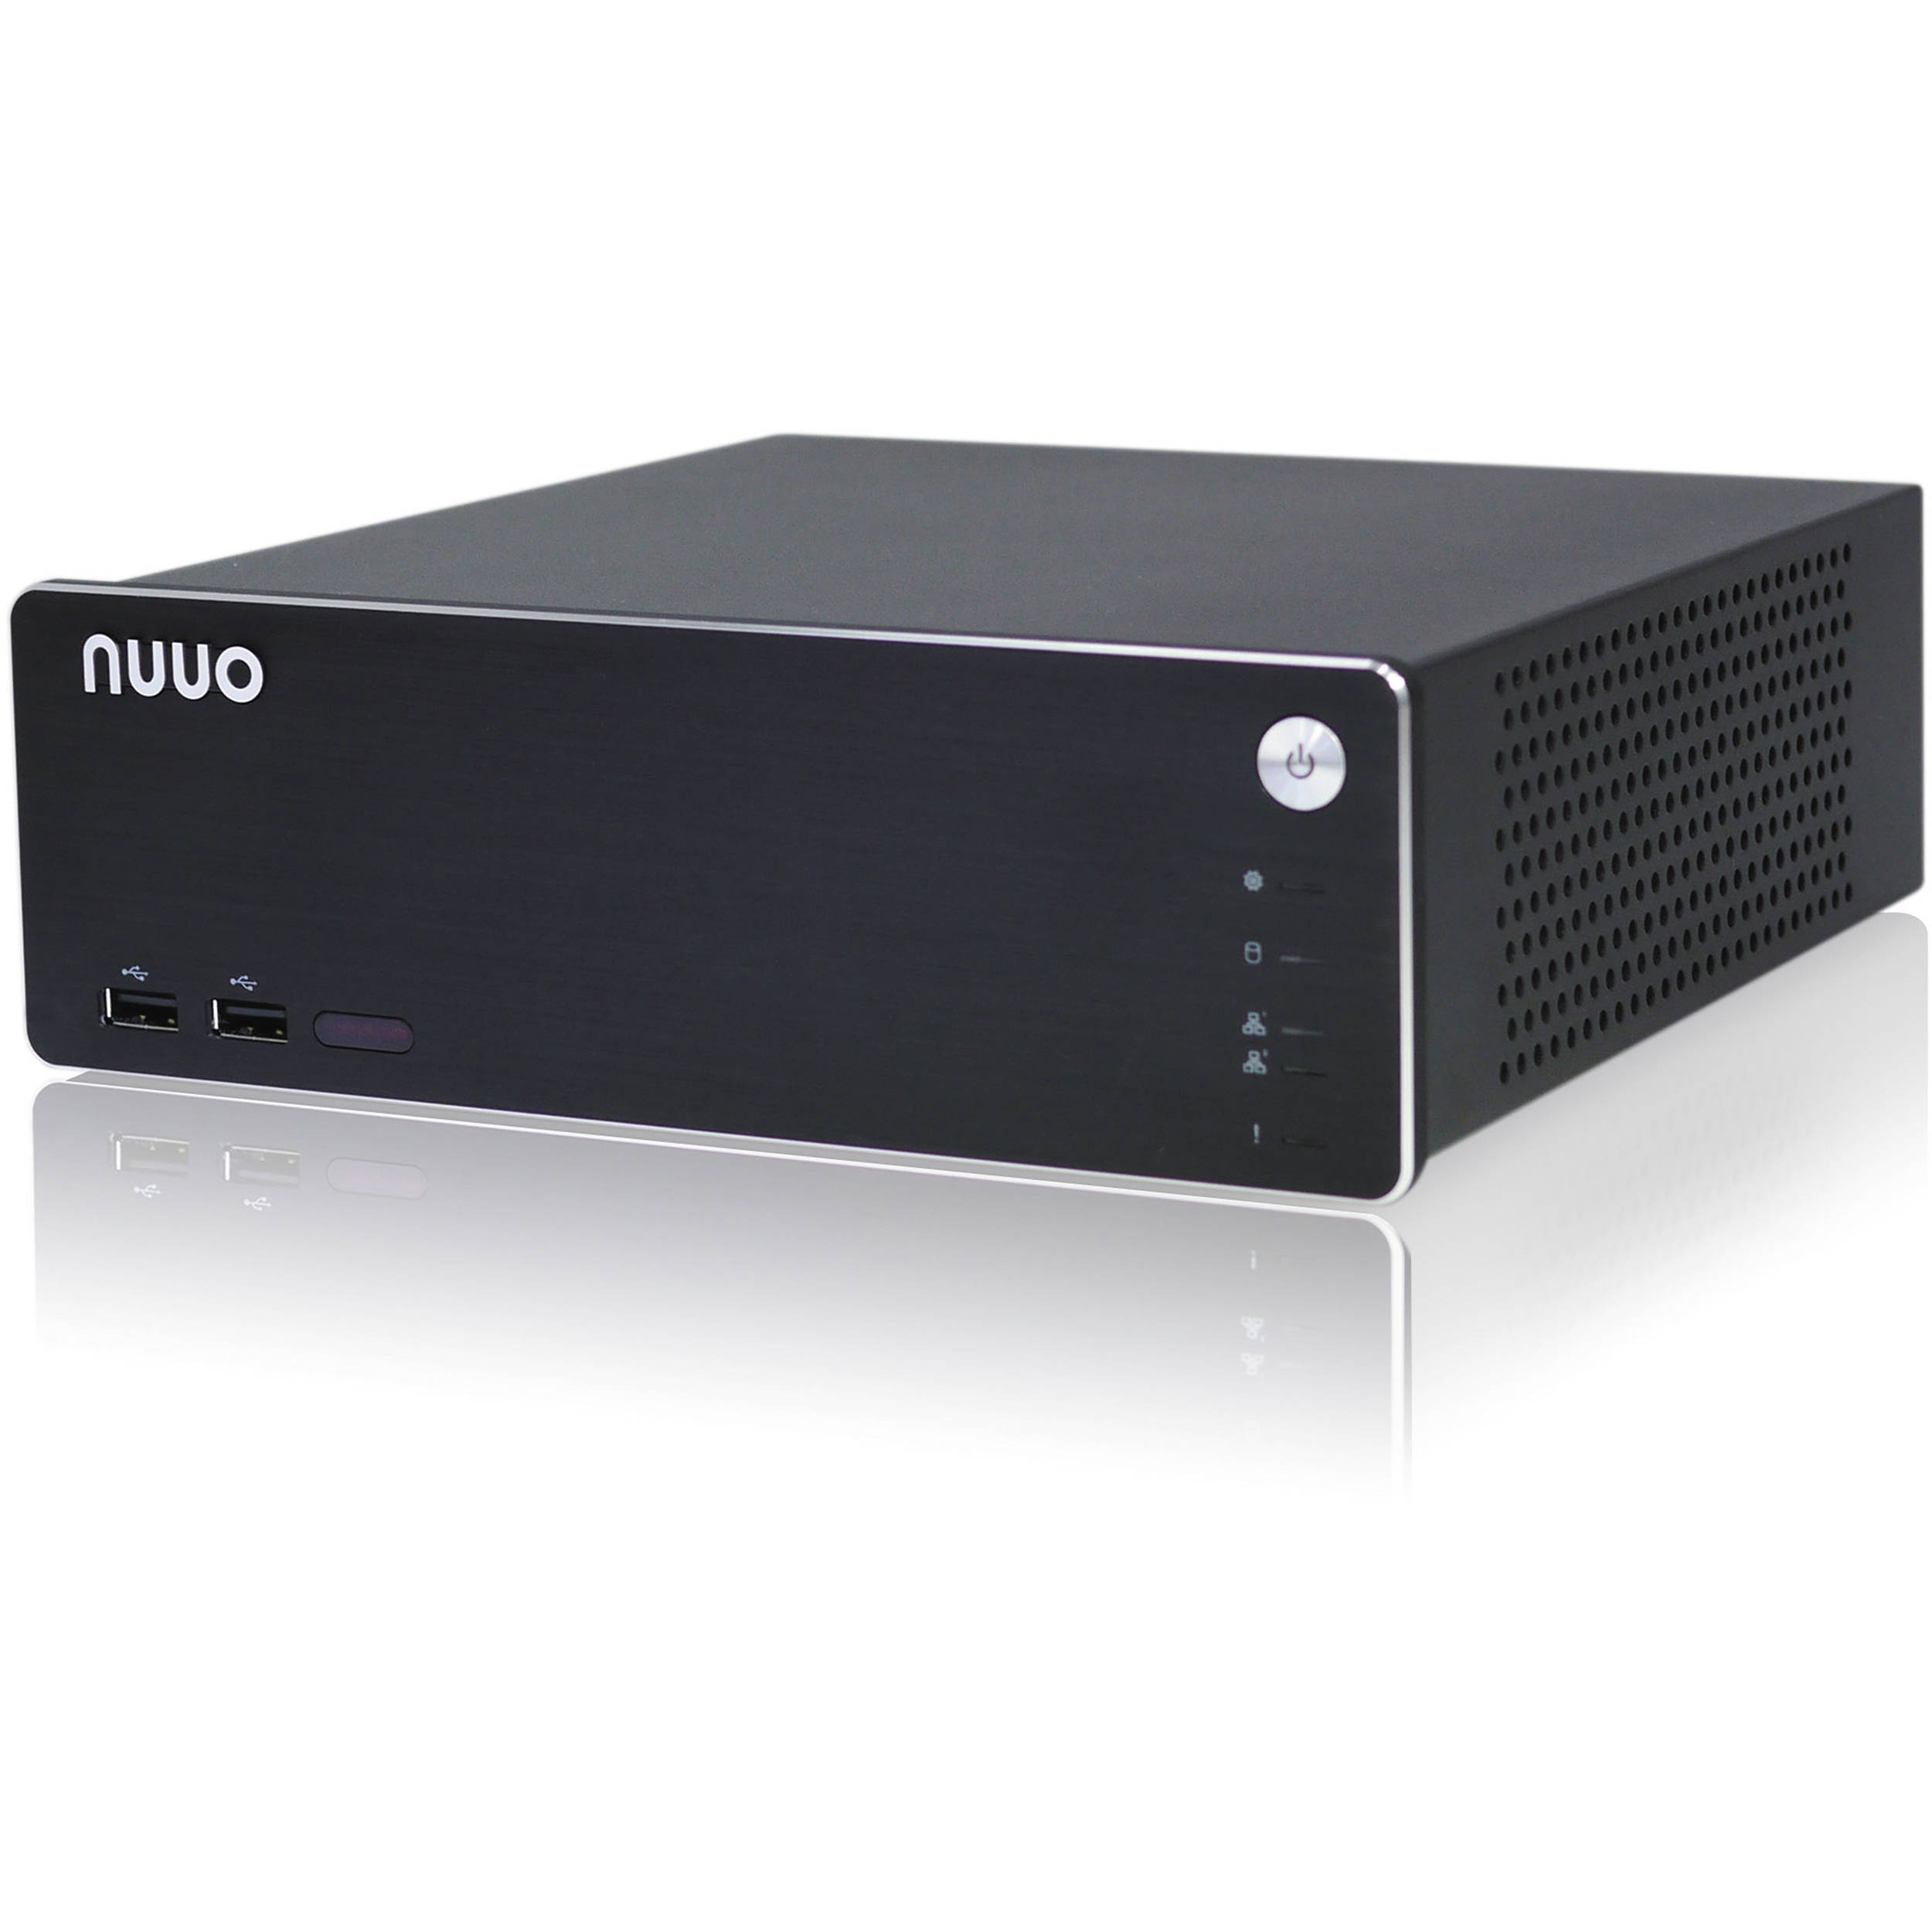 NS-2080-US-1T-1 NUUO NVR Standalone 8ch, 2bay, RAID 0,1, 1TB included, US Power Cord ************************* SPECIAL ORDER ITEM NO RETURNS OR SUBJECT TO RESTOCK FEE *************************